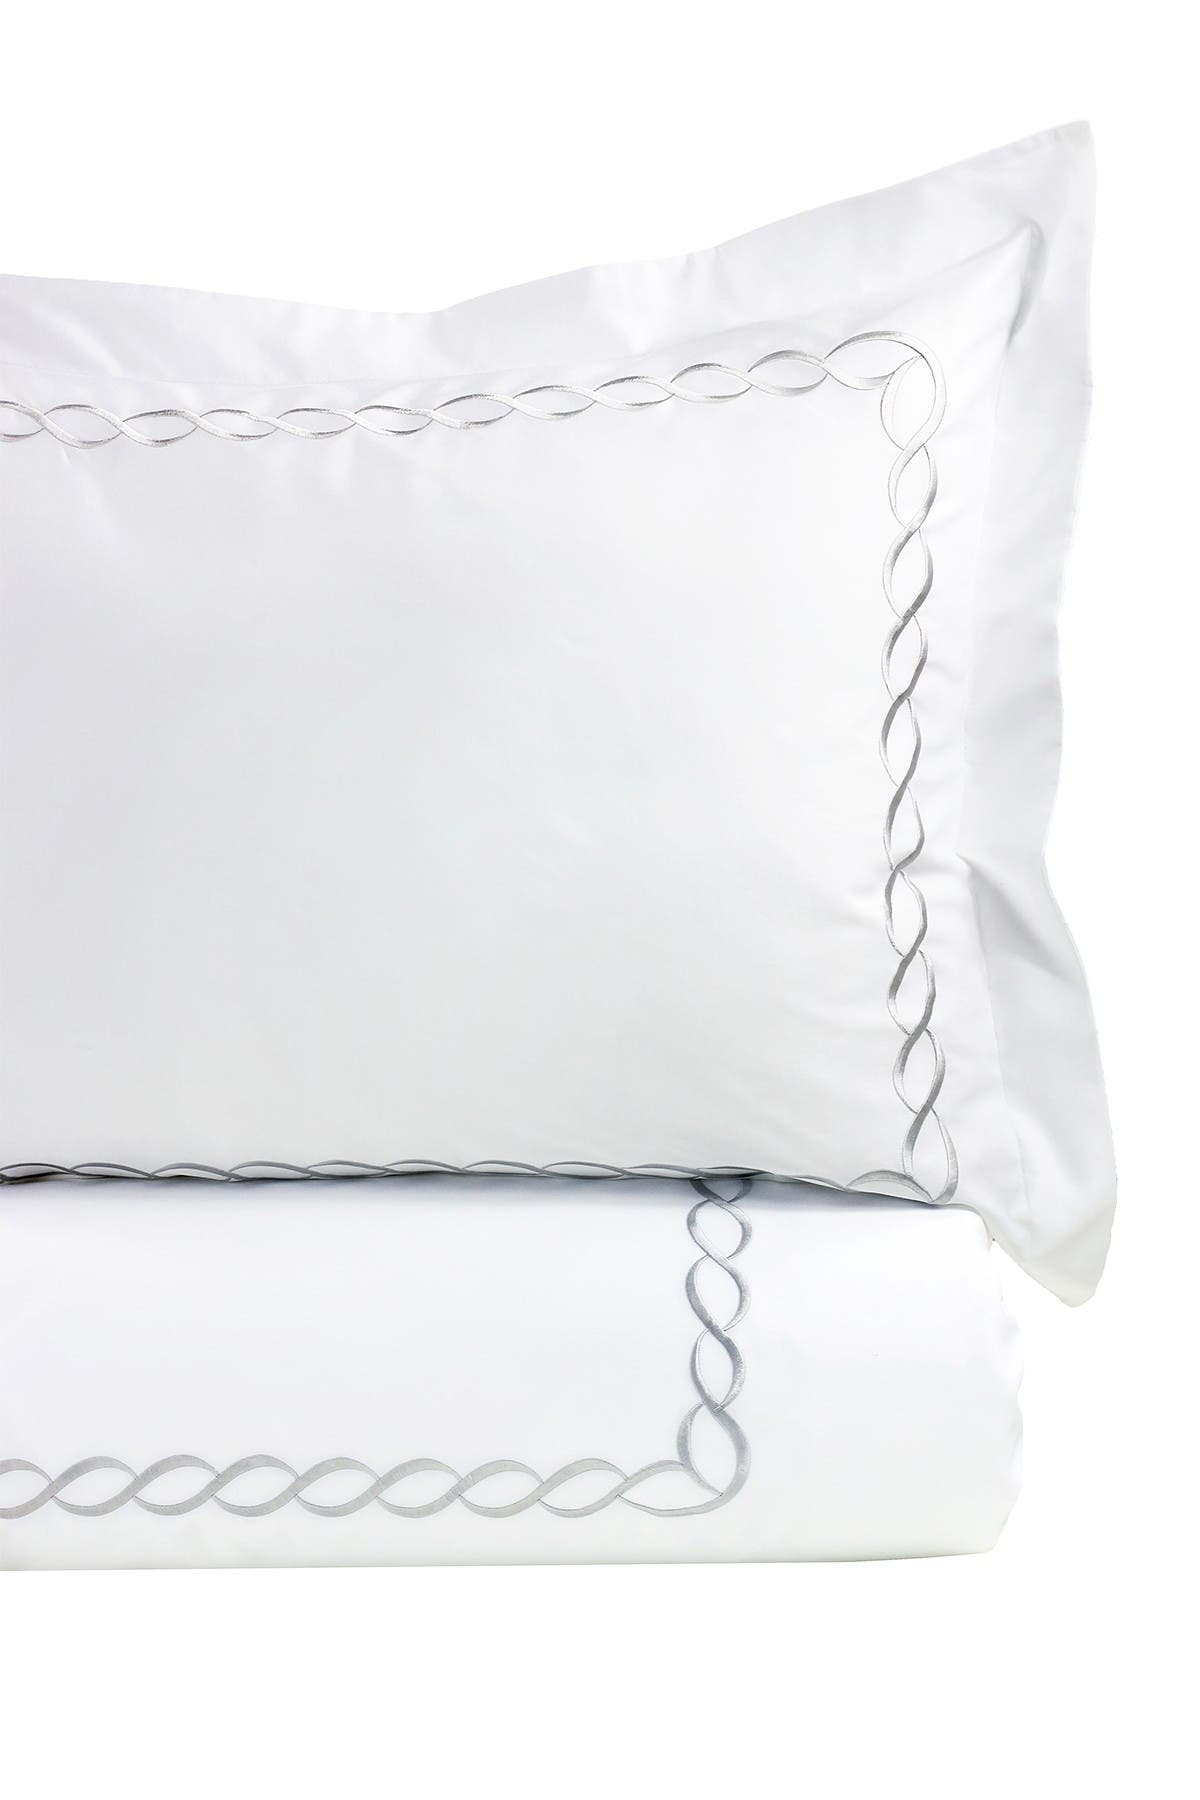 Image of Melange Home Rope Embroidered Queen 600-Thread Count 4-Piece Sheet Set